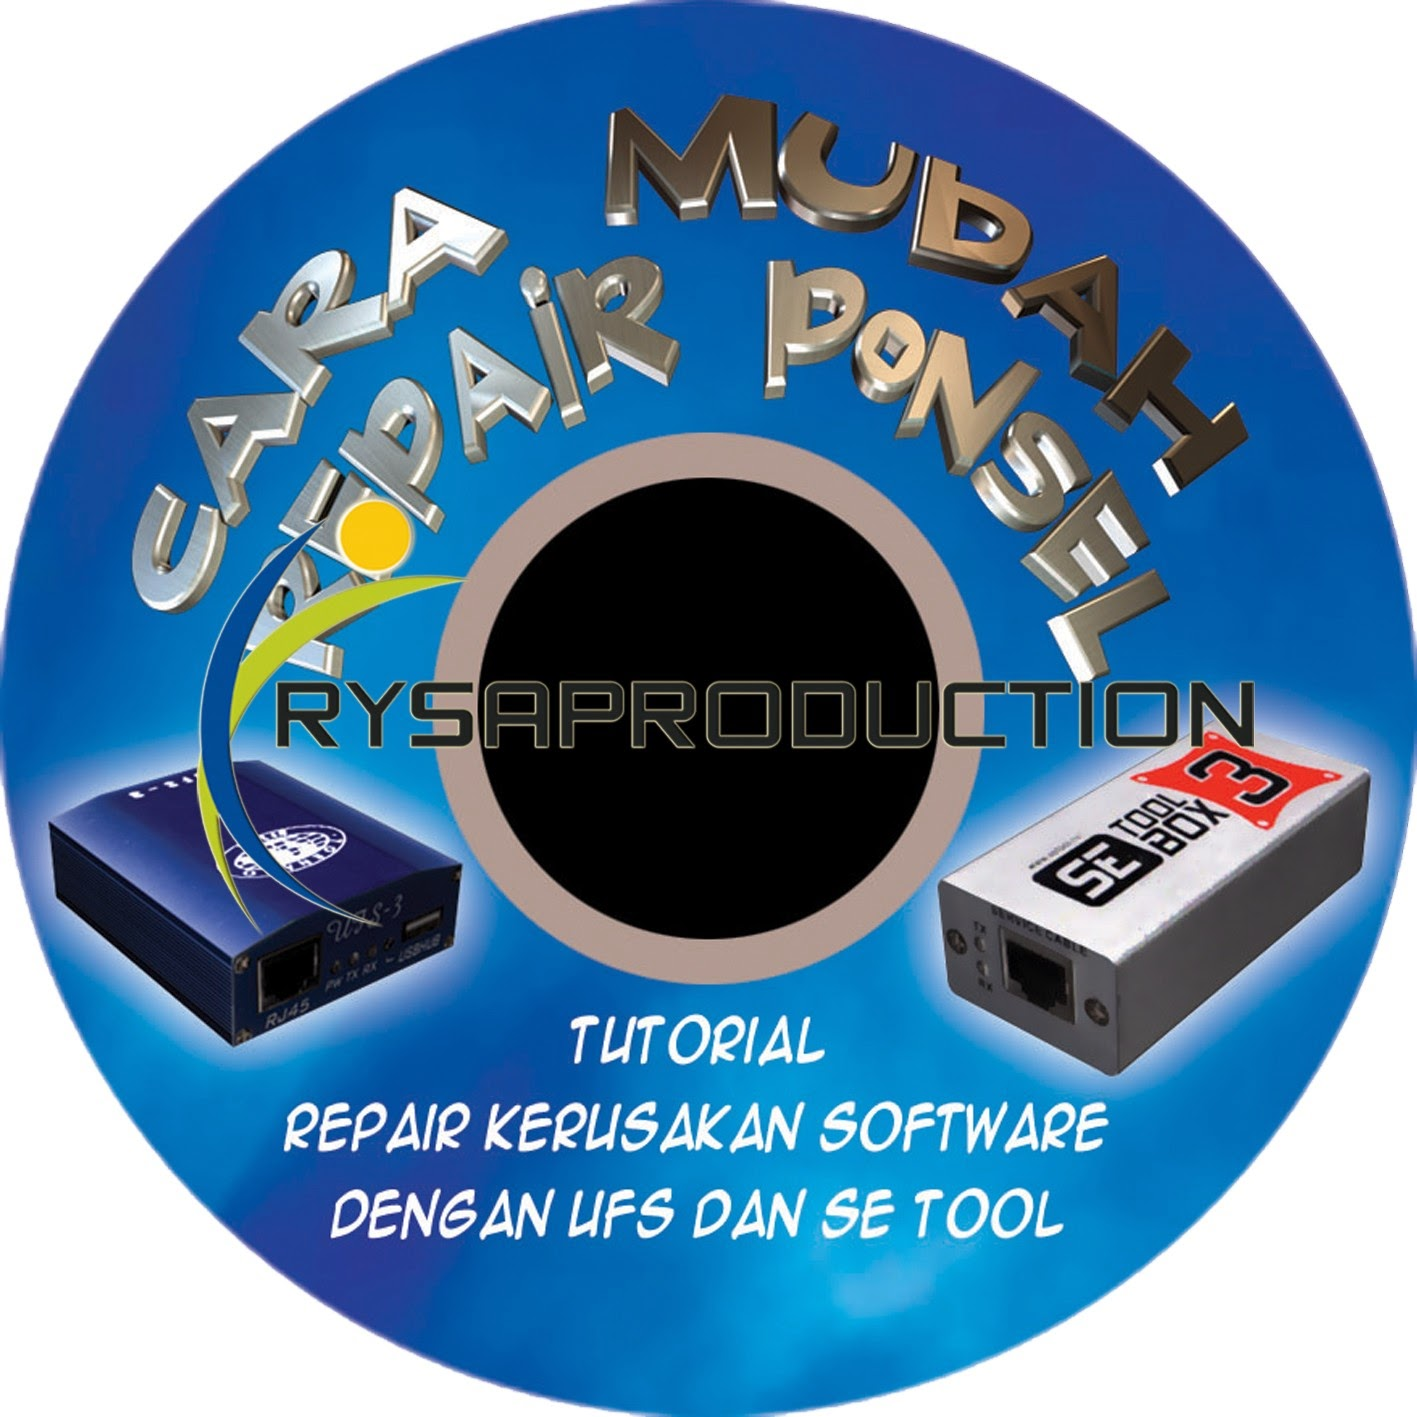 Tutorial Repair Kerusakan Software